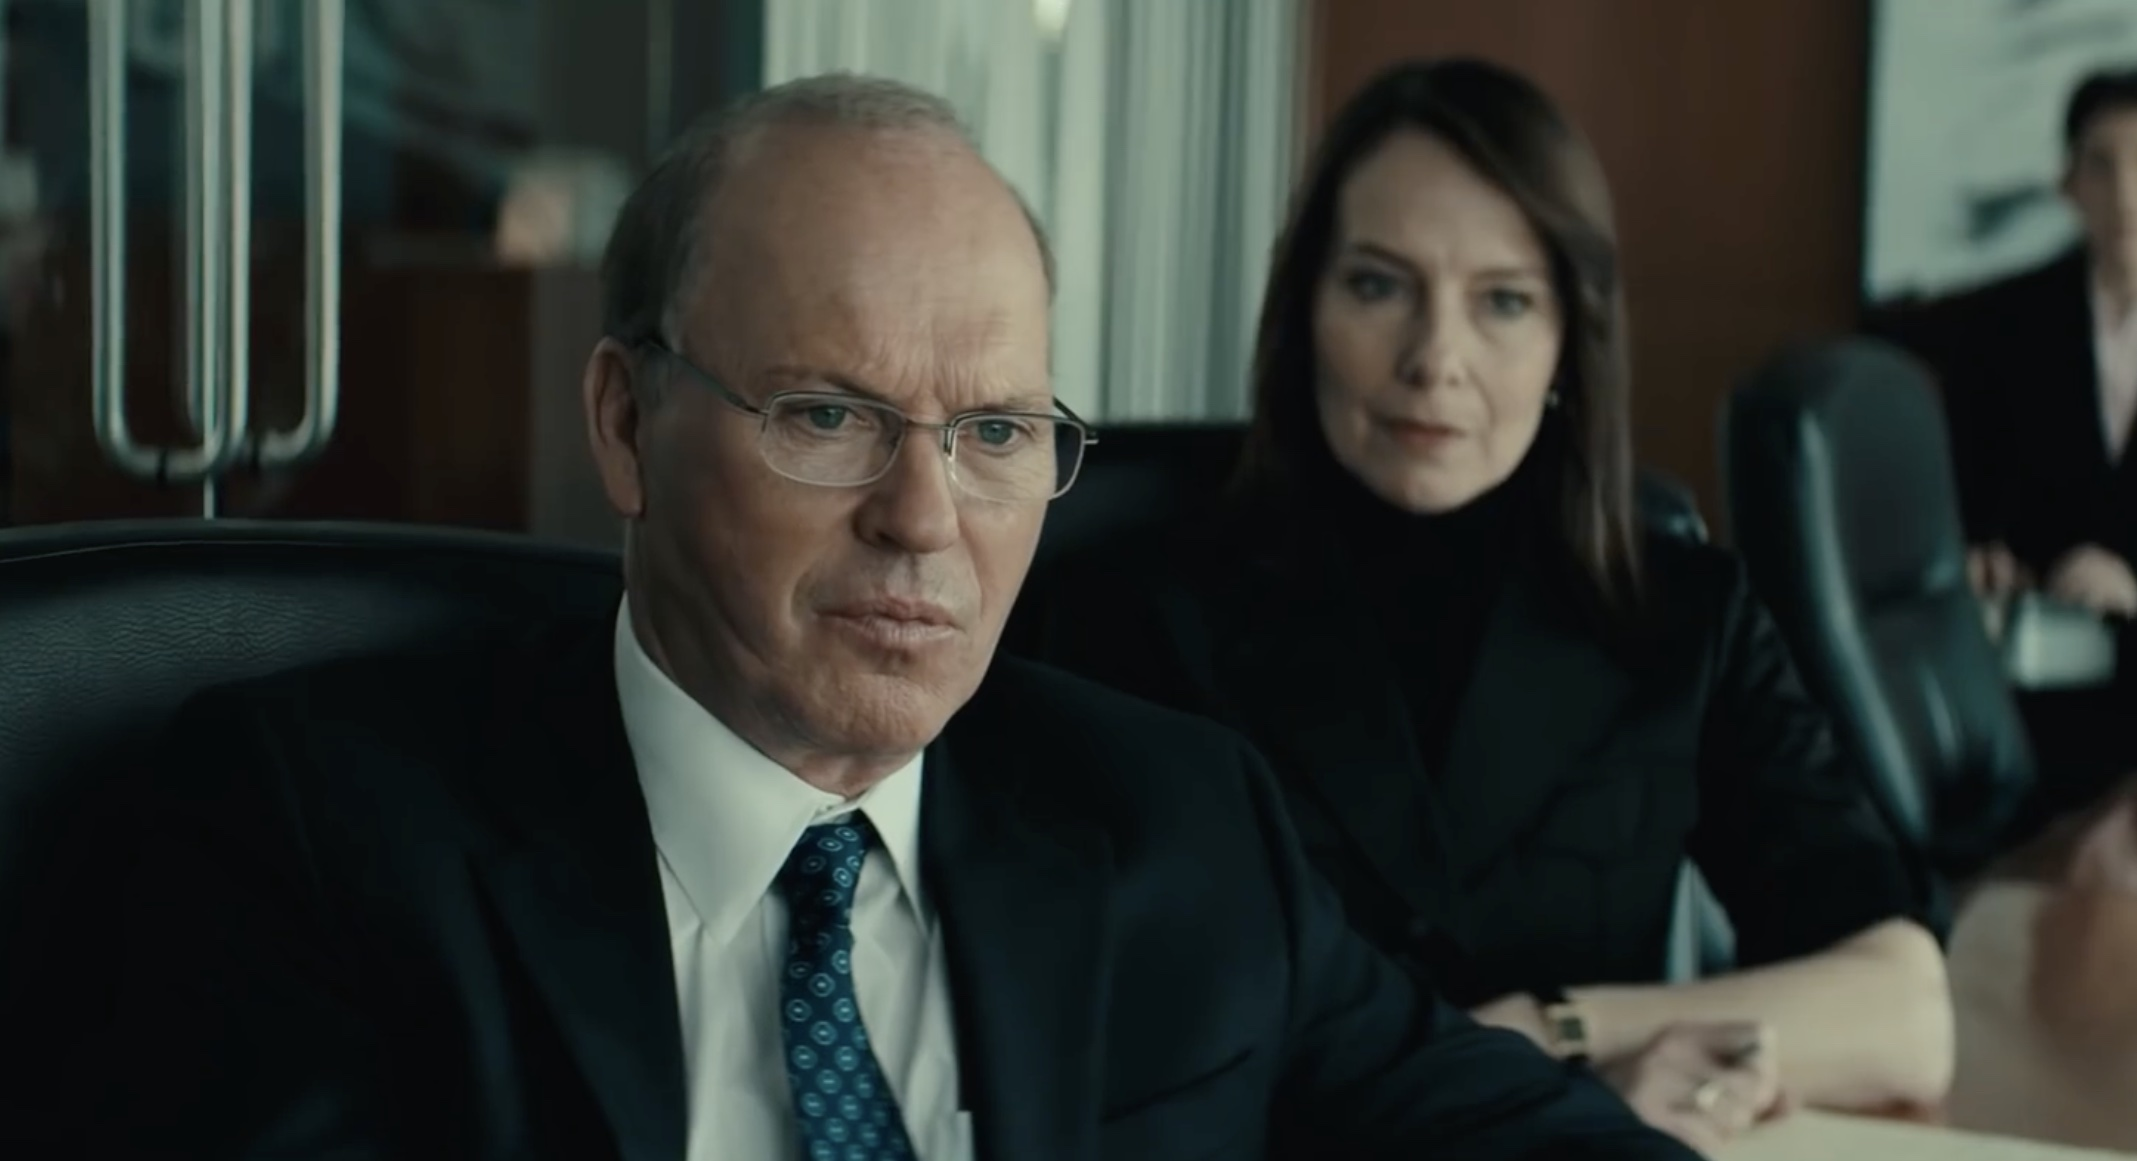 Michael Keaton and Amy Ryan in a conference room grimacing in Worth